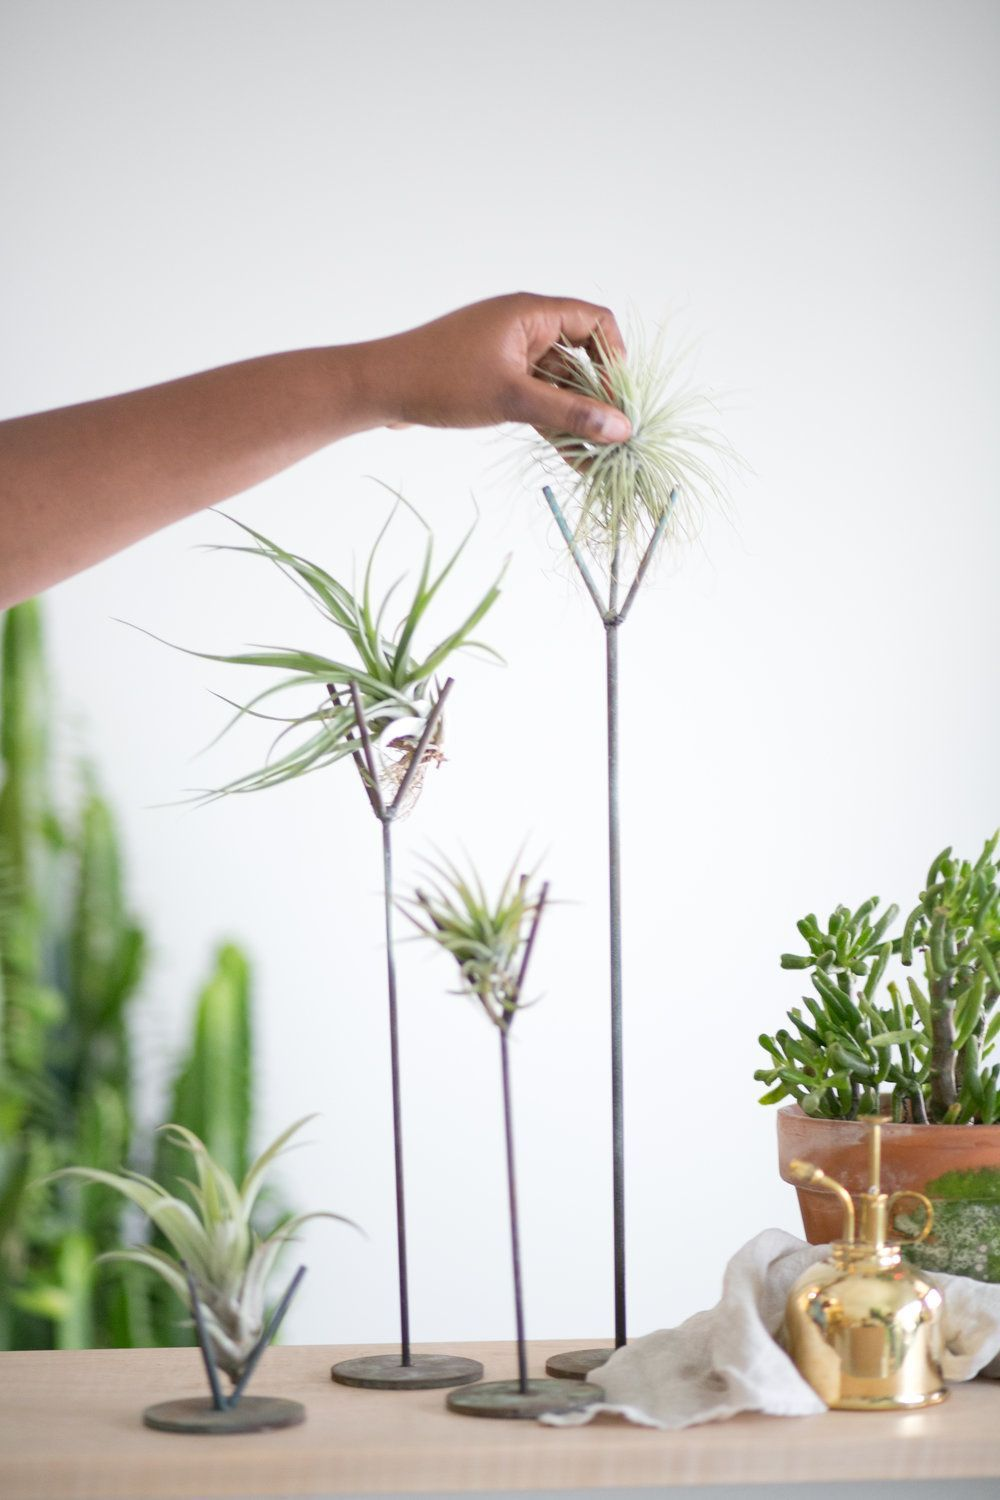 Weathered Turquoise Air Plant Stands — The Zen Succulent | Durham's Neighborhood Plant & Gift Shop#air #durhams #gift #neighborhood #plant #shop #stands #succulent #turquoise #weathered #zen